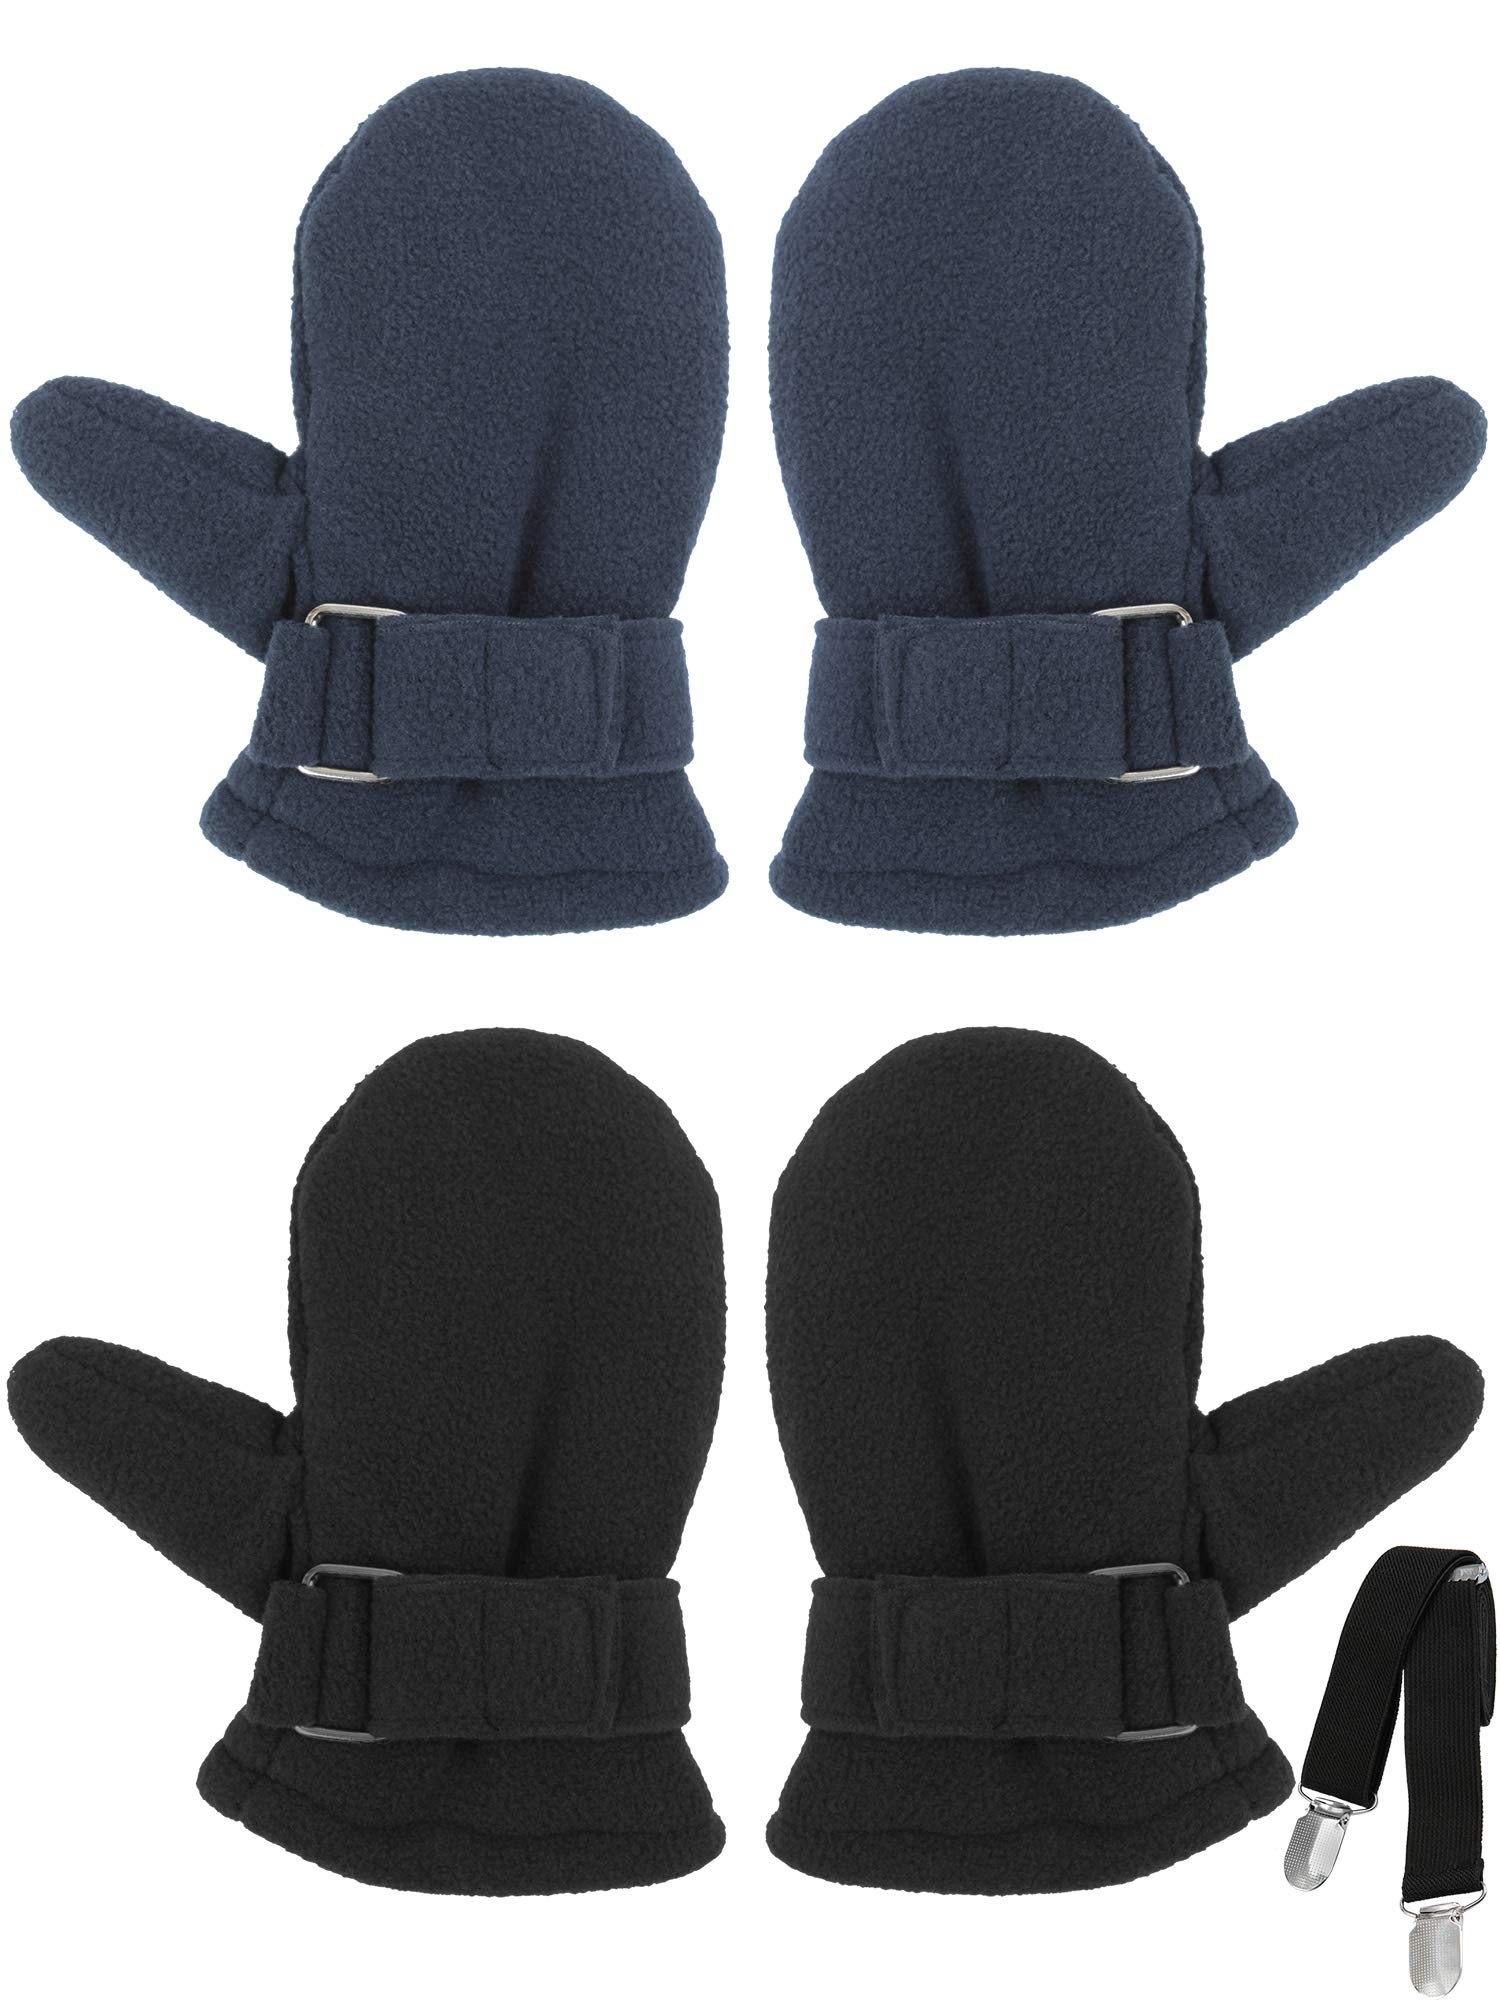 Cooraby 2 Pairs Toddler Kids' Sherpa Lined Mittens Baby Boys or Girls Winter Gloves with Adjustable Mitten Clips